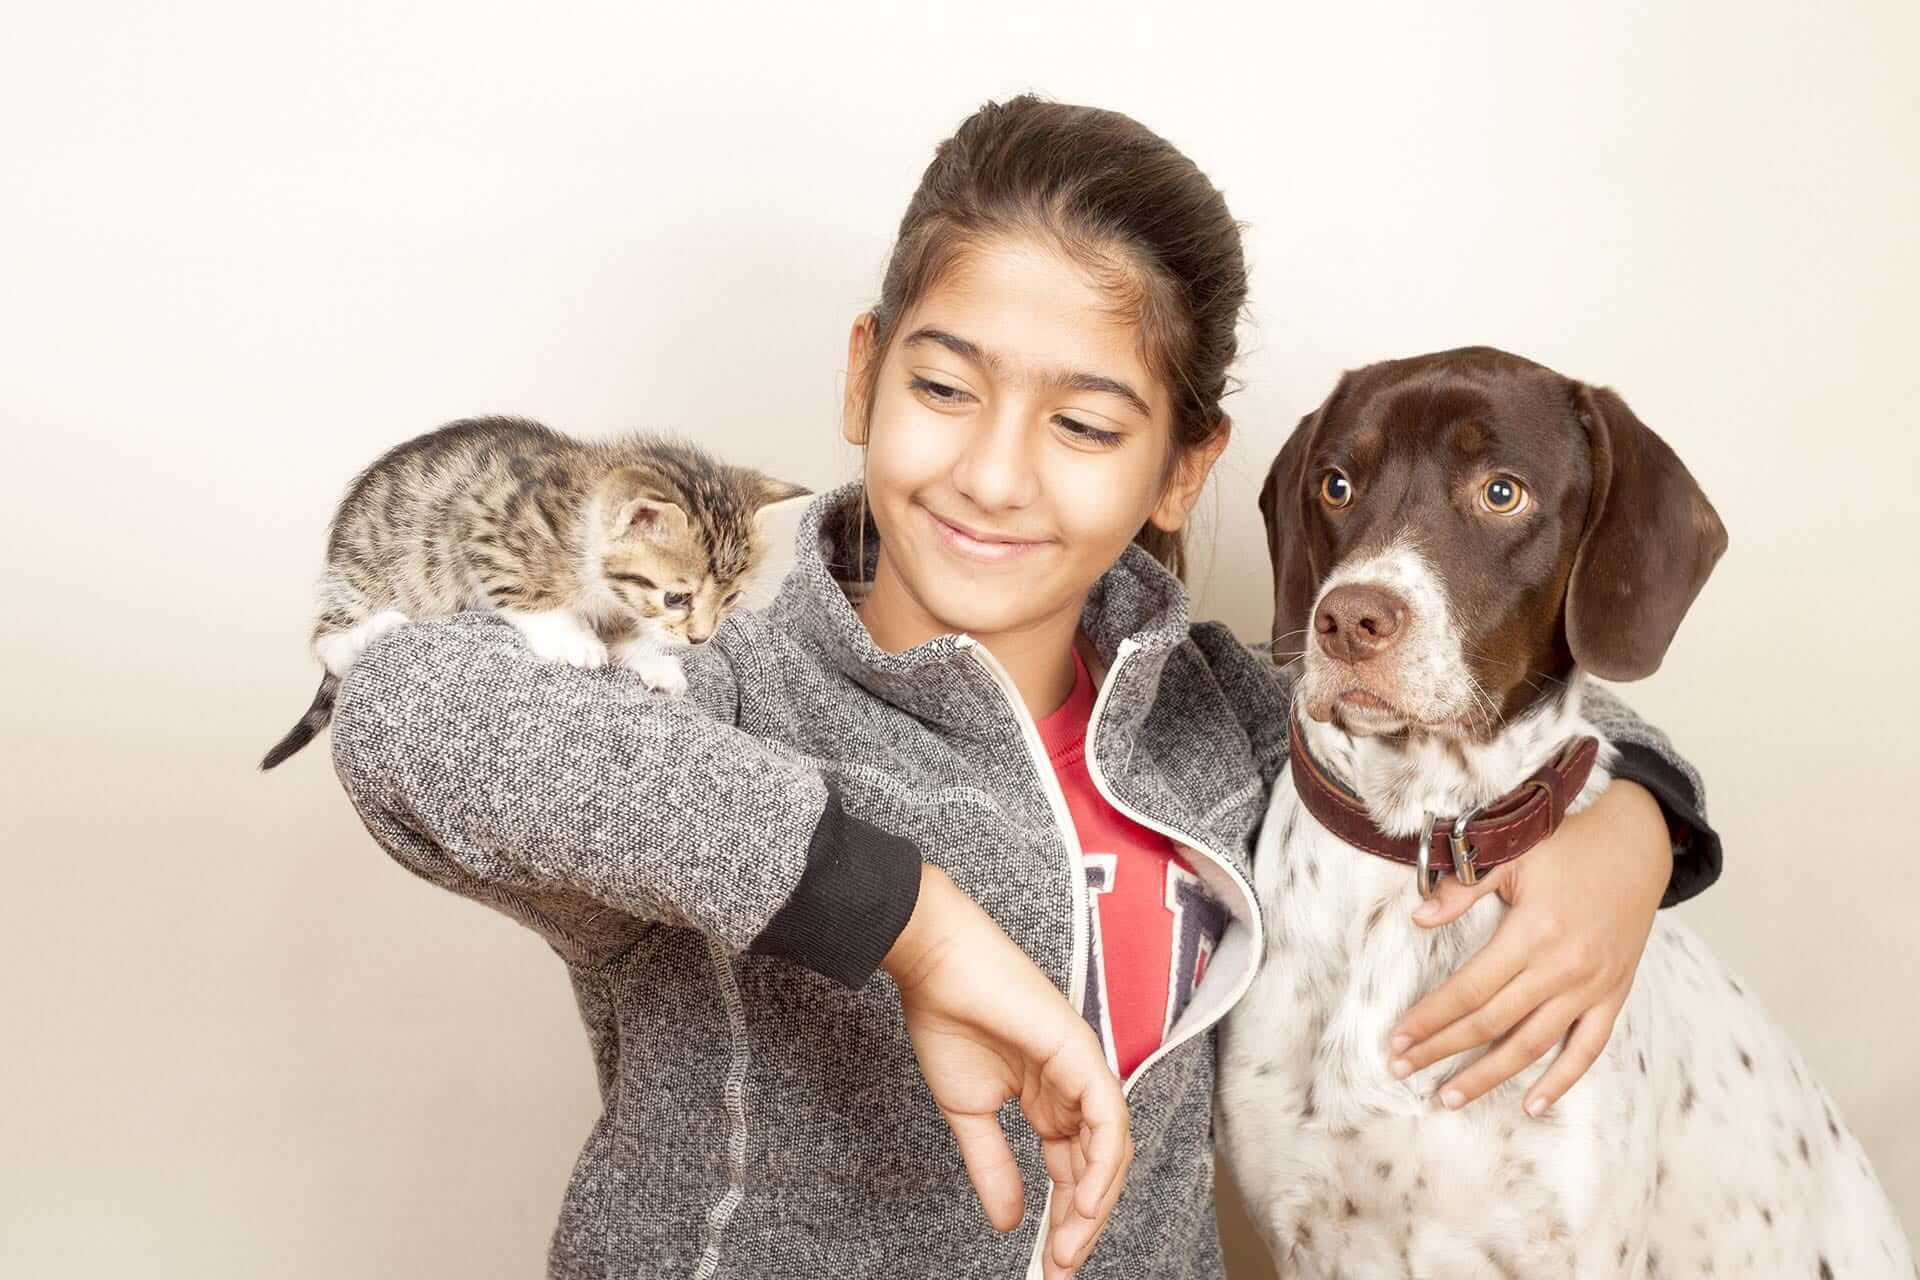 Cats and dogs with a young girl